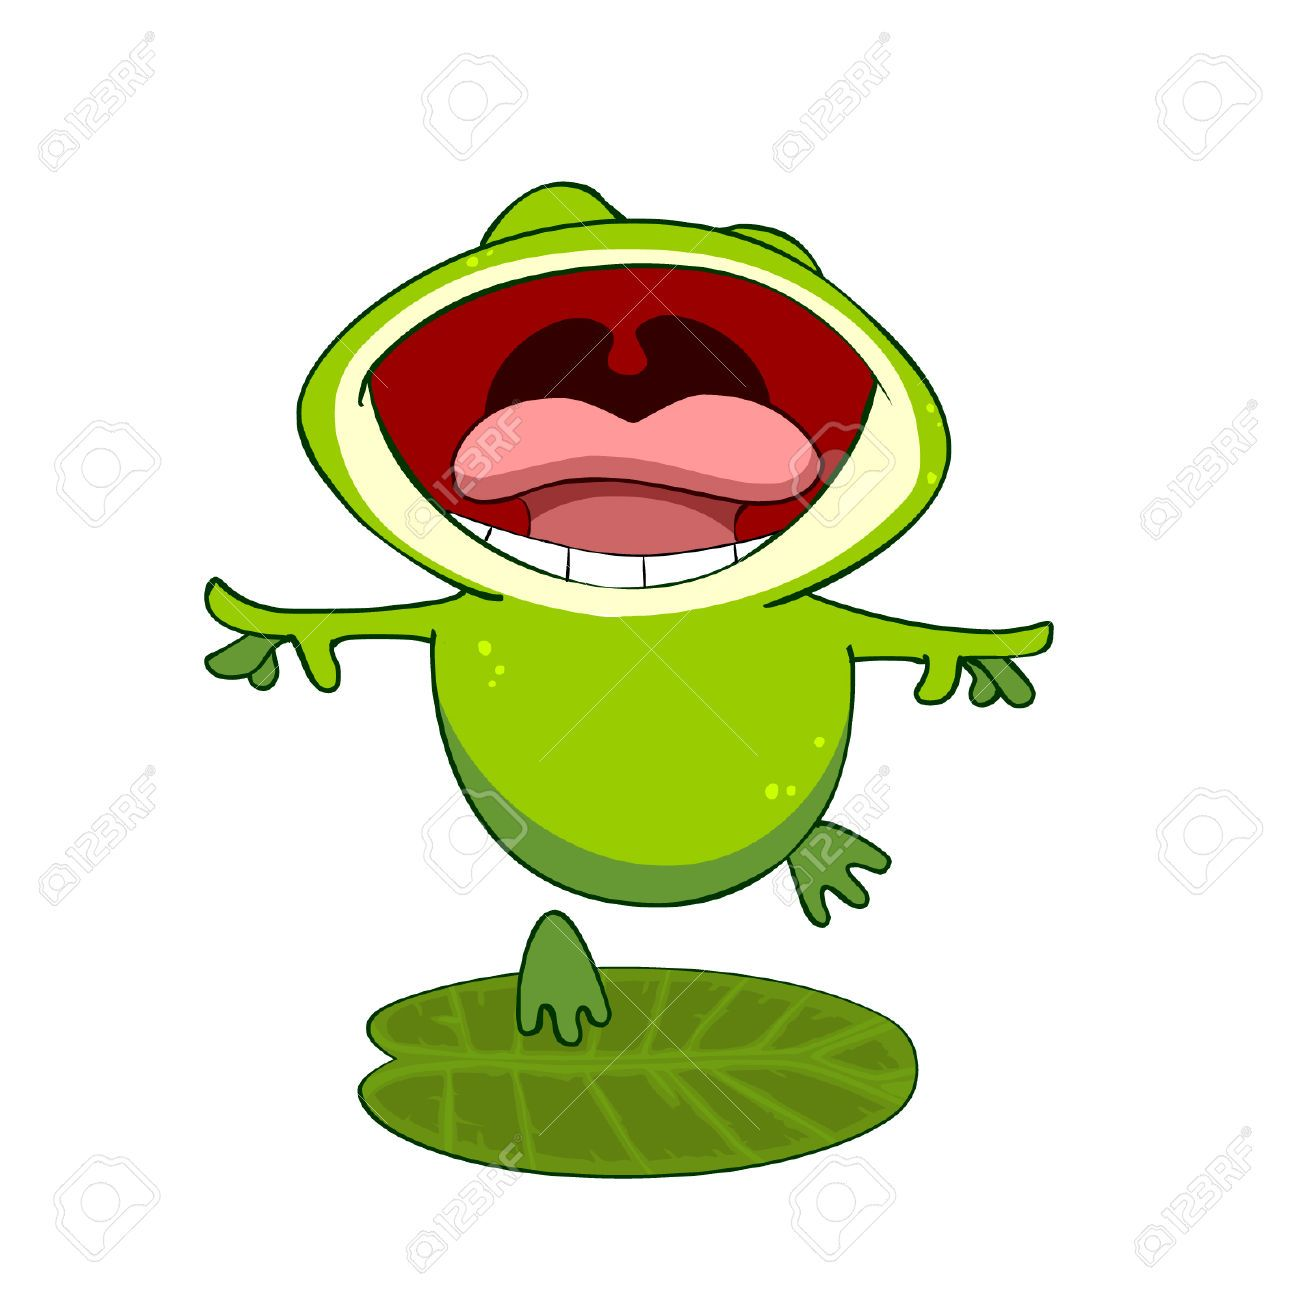 Frog clipart open mouth, Frog open mouth Transparent FREE.